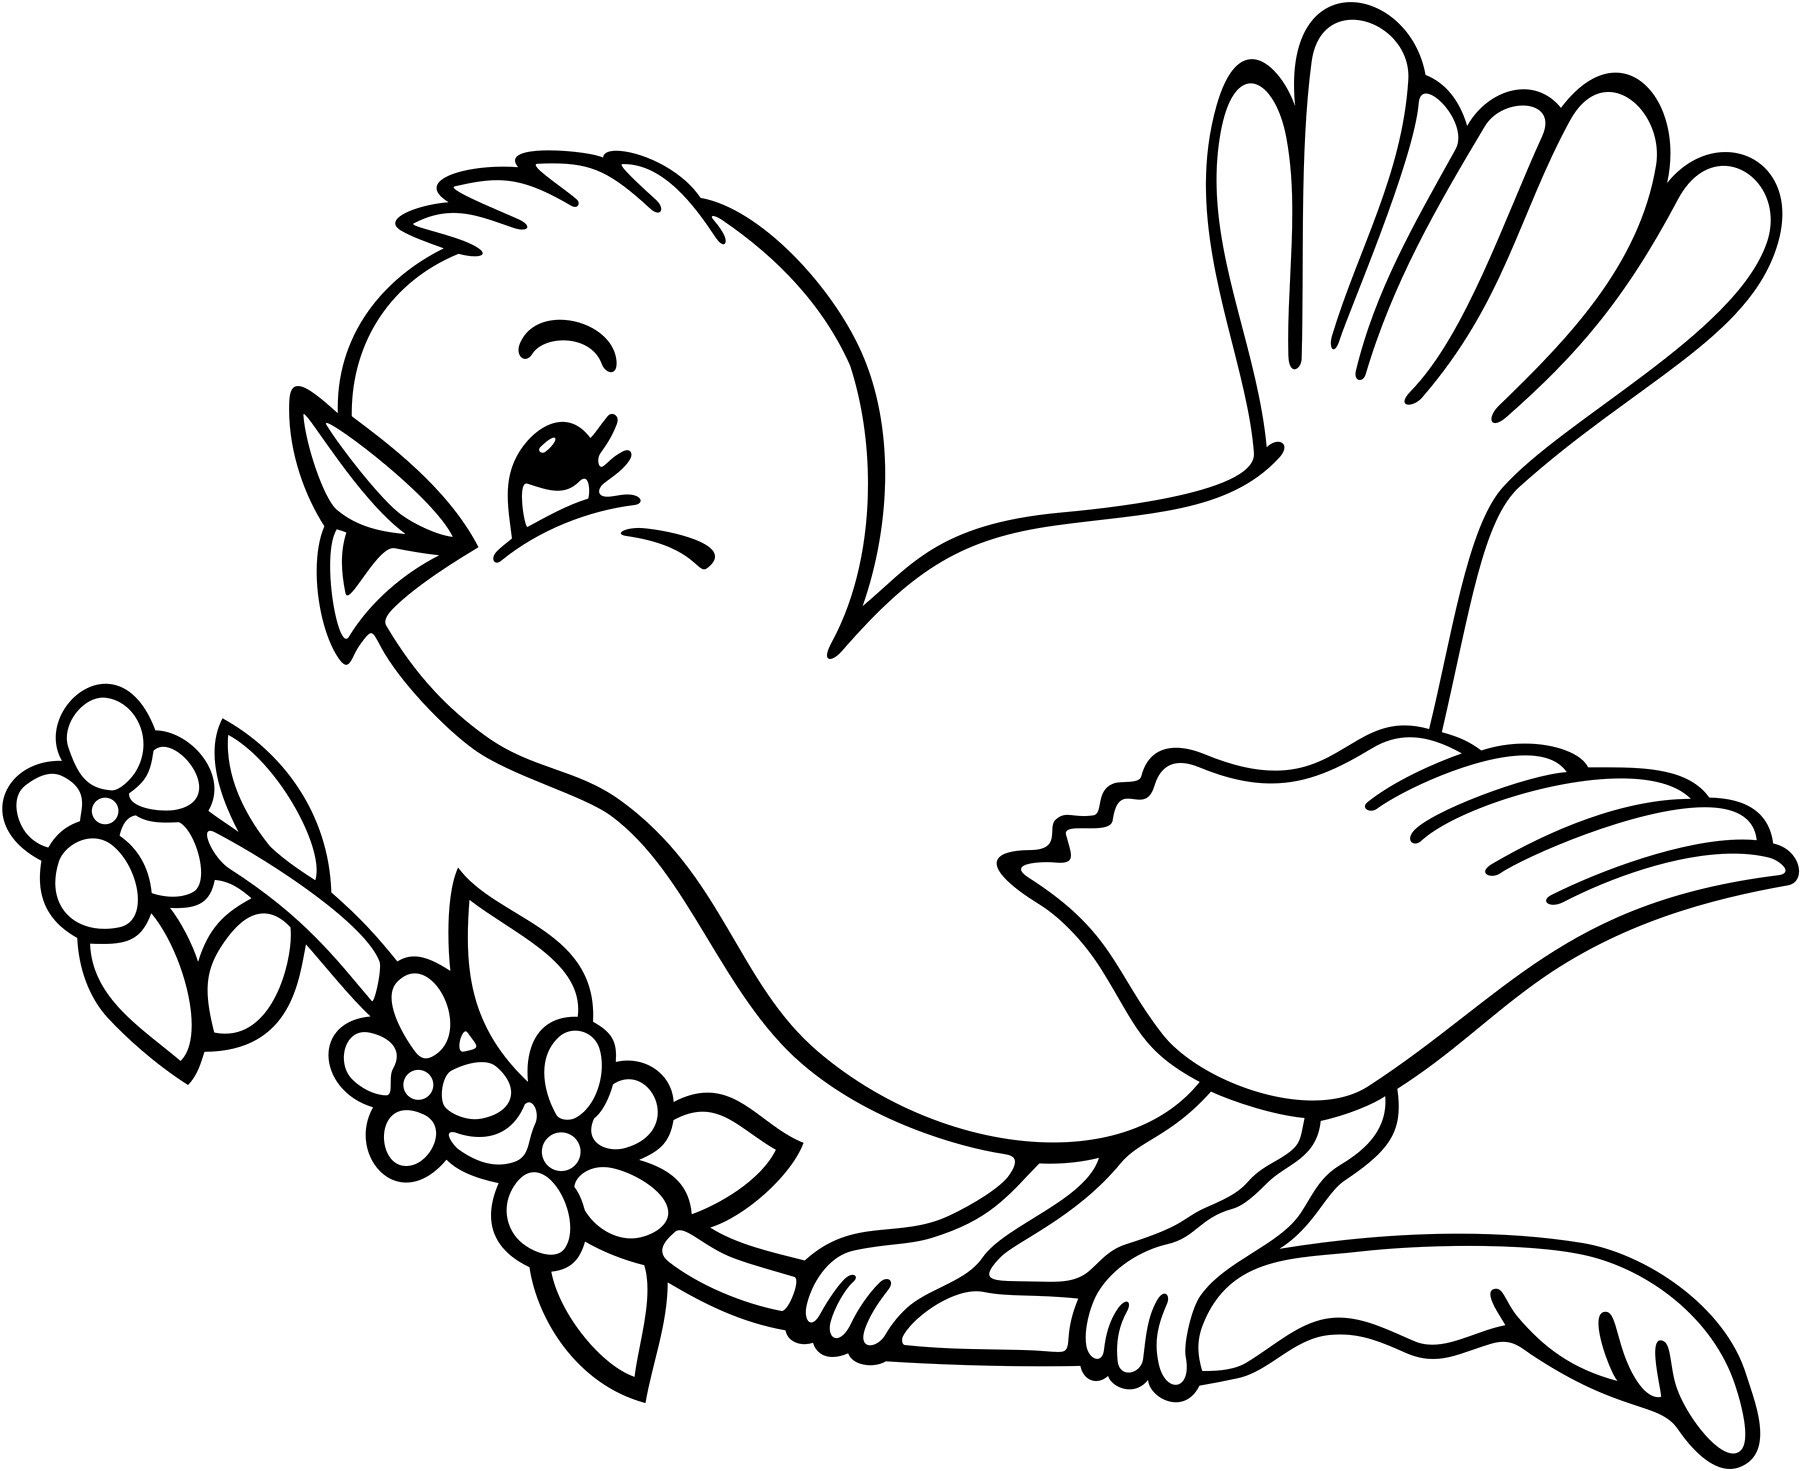 Cute Tweety Bird Coloring Pages For Kids Freecolorngpages Co In Birds Bird Coloring Pages Coloring Pages Animal Coloring Pages